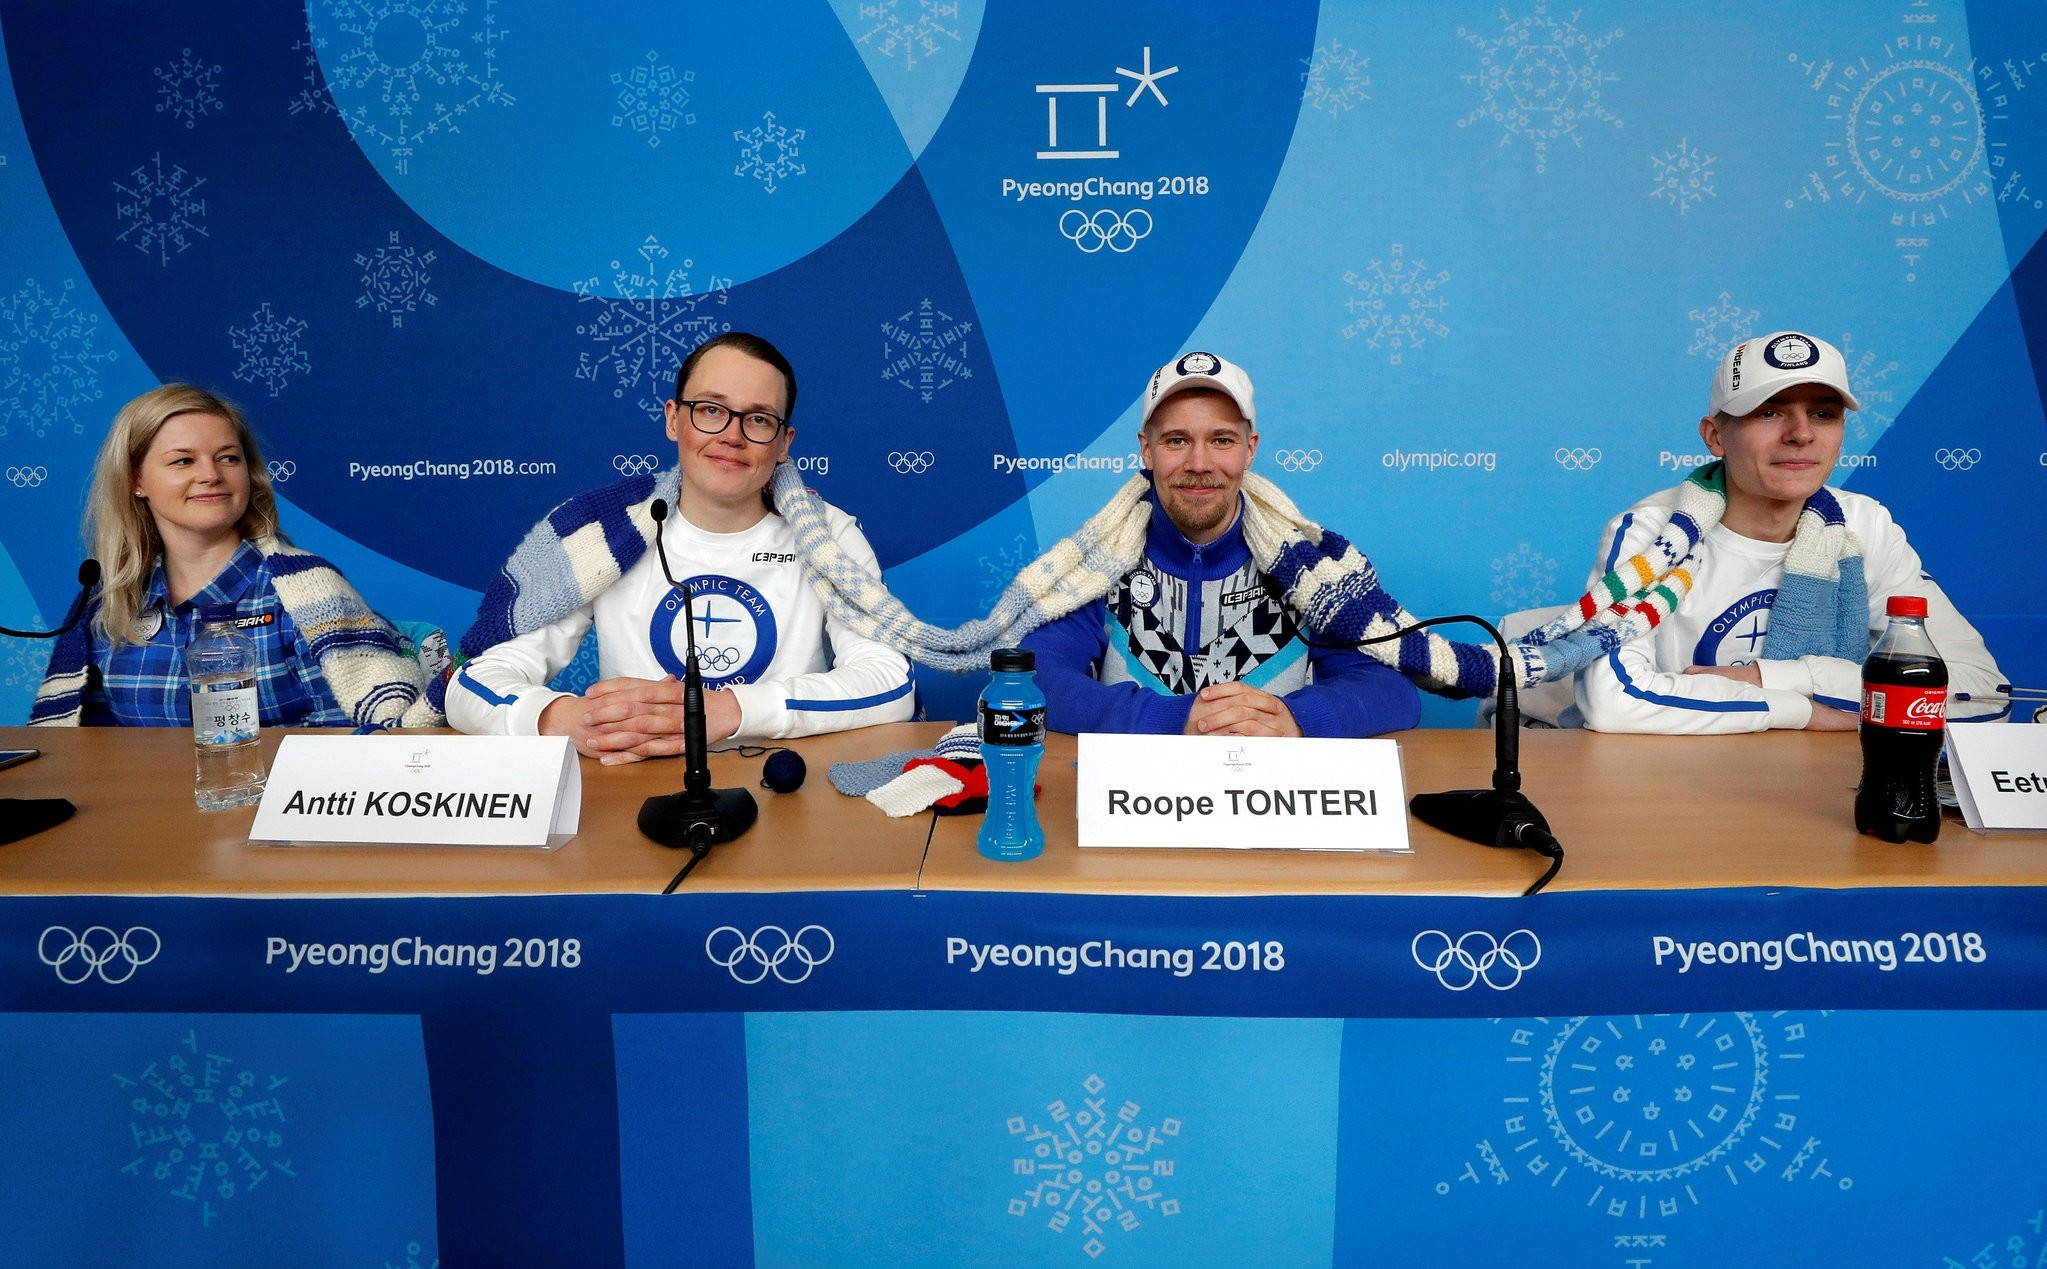 Members of the Finland Olympic team attend a news conference regarding the knitting project in Pyeongchang, South Korea, February 14, 2018. (REUTERS Photo)